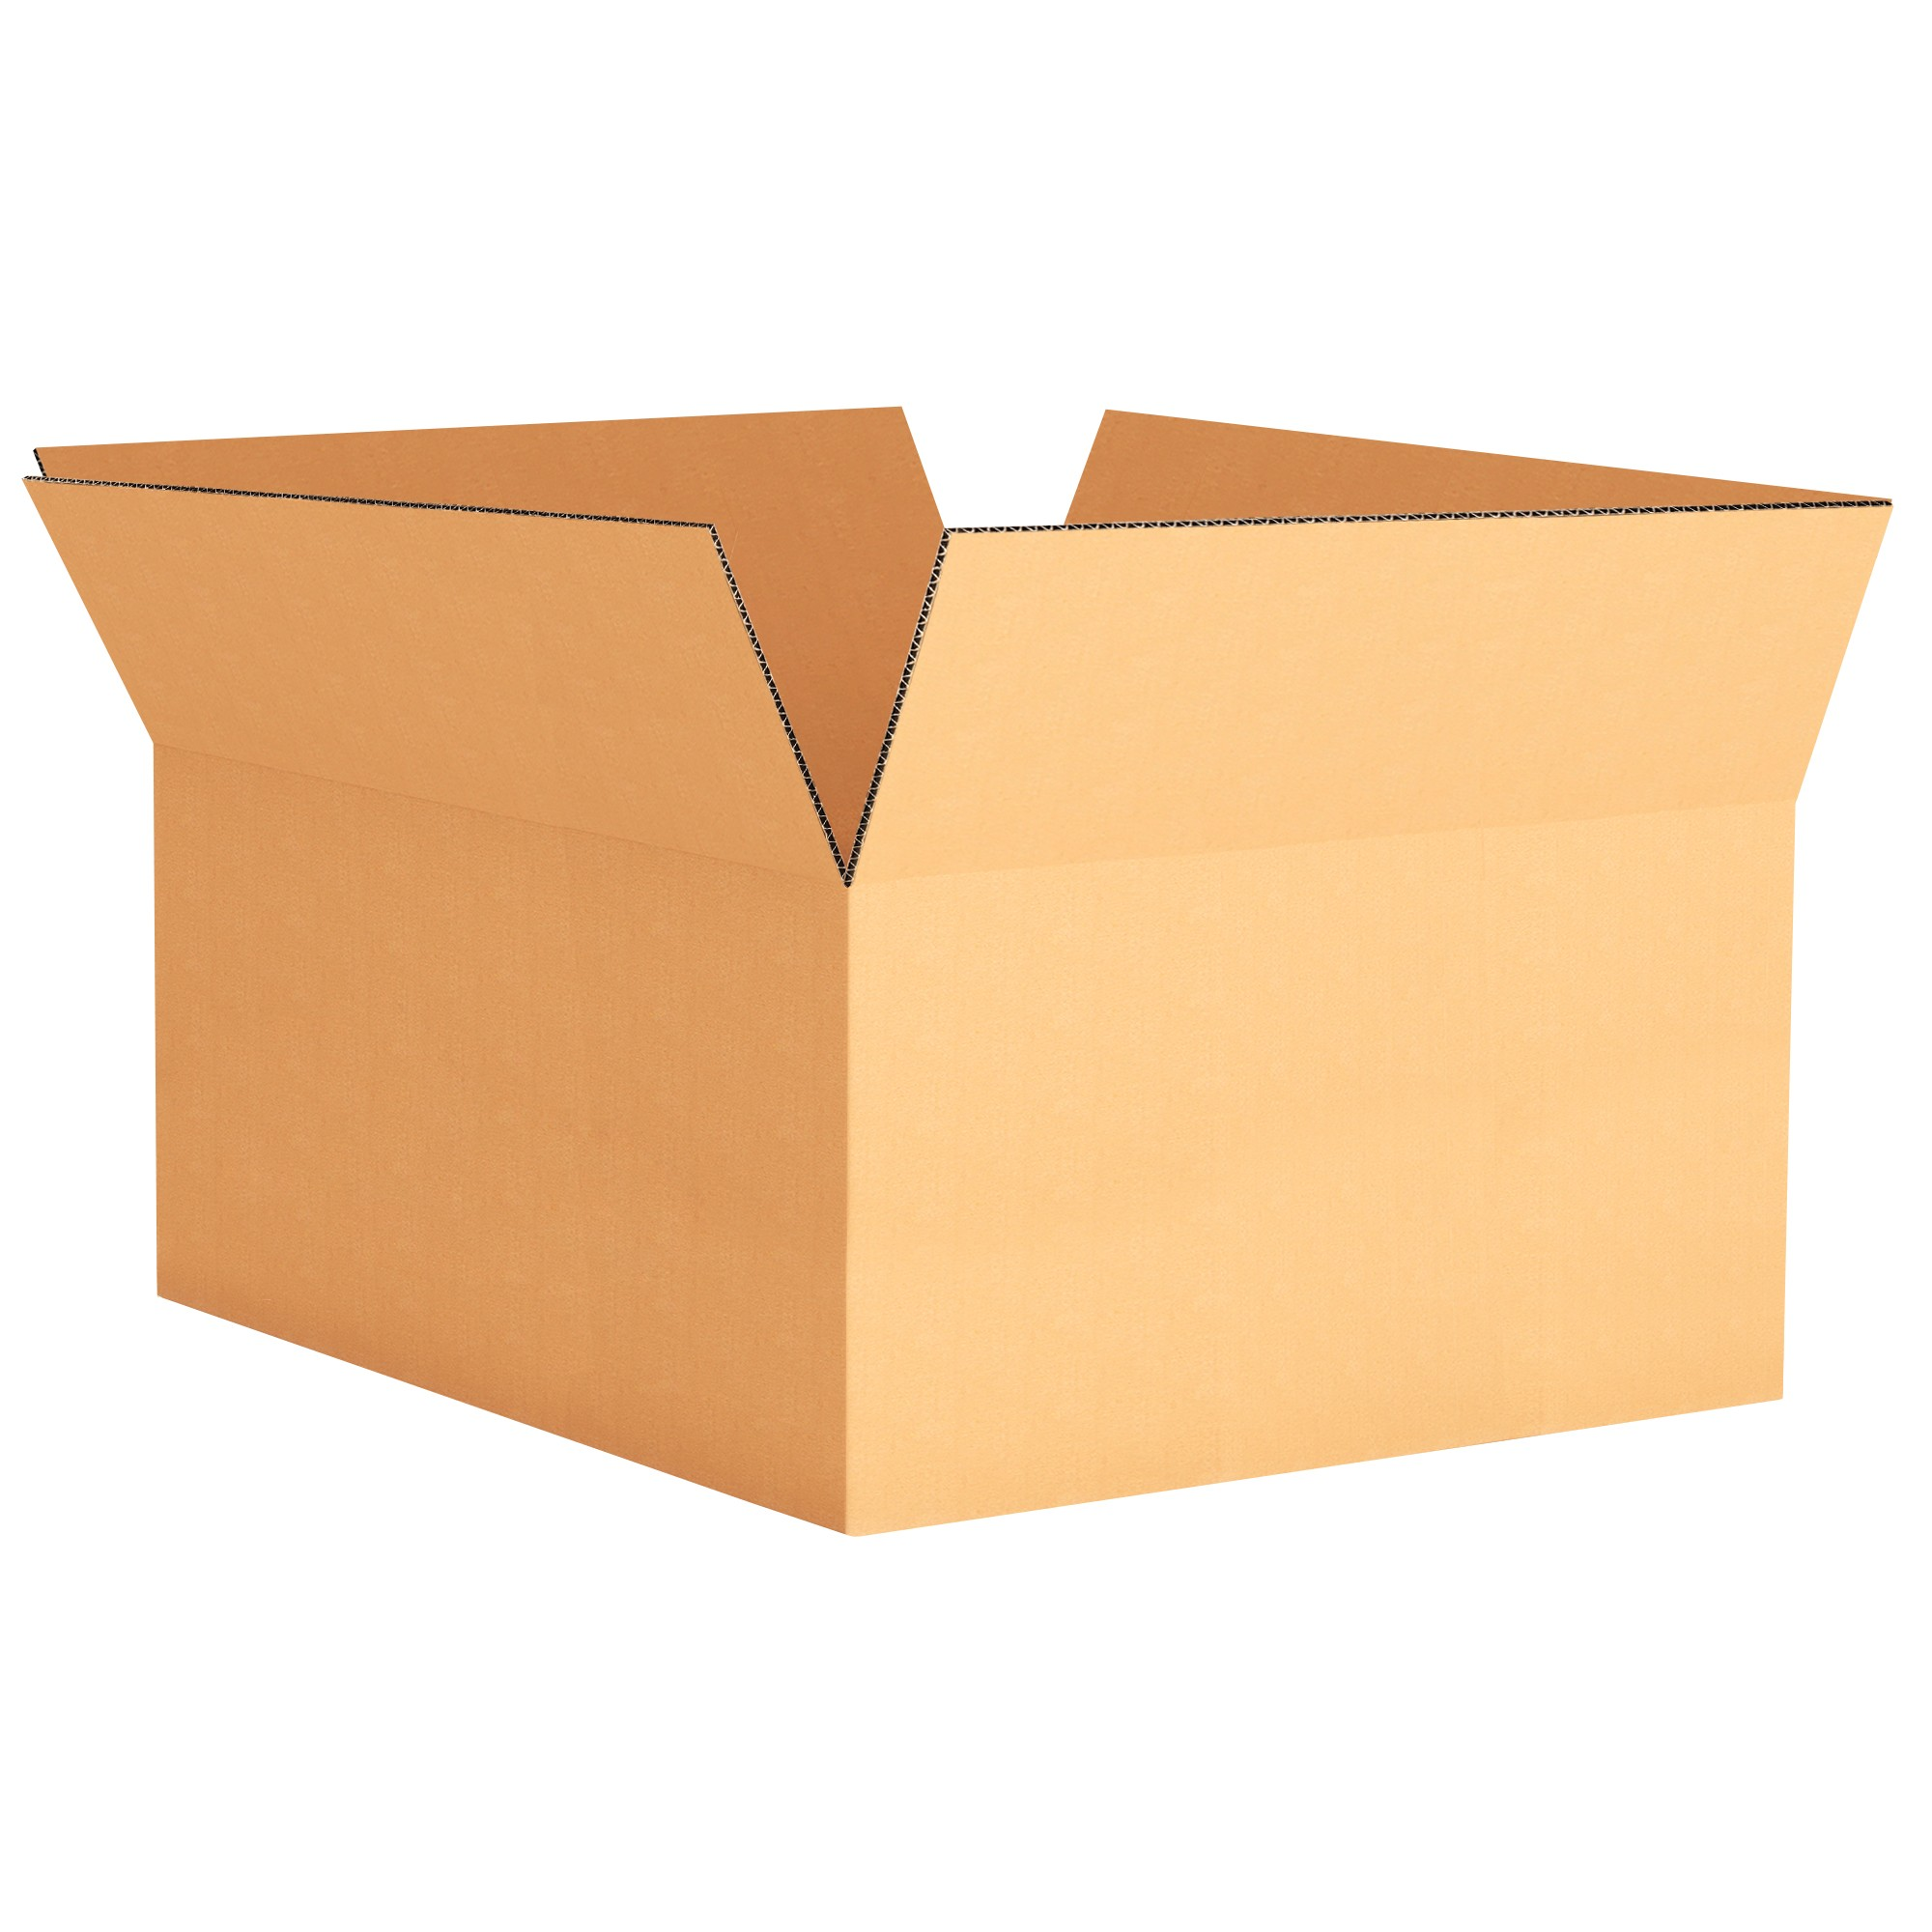 "TOTALPACK® 12 x 9 x 6"" Single Wall Corrugated Boxes 25 Units"